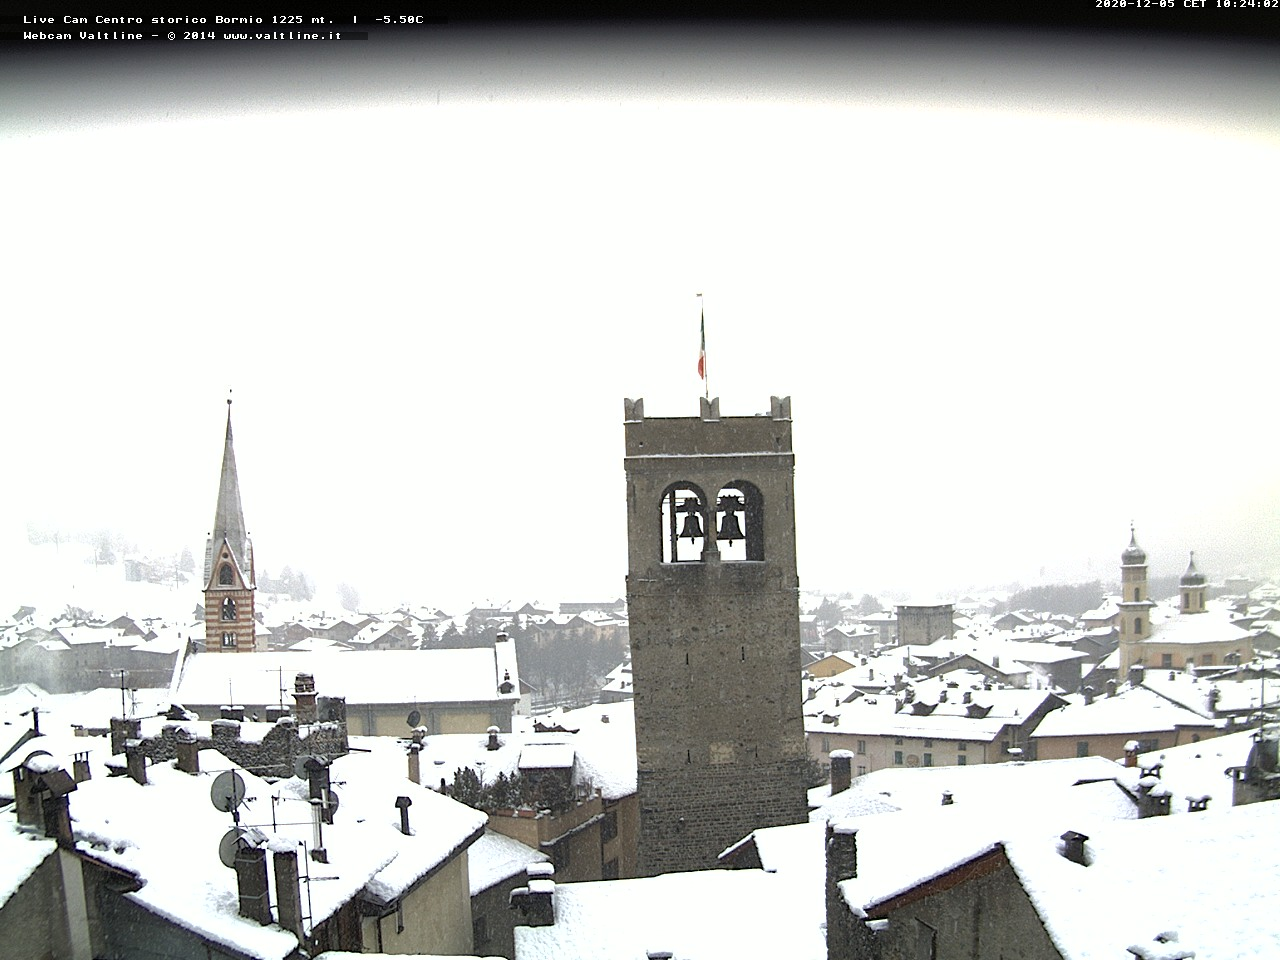 Webcam en Bormio, Bormio (Alpes Italianos)